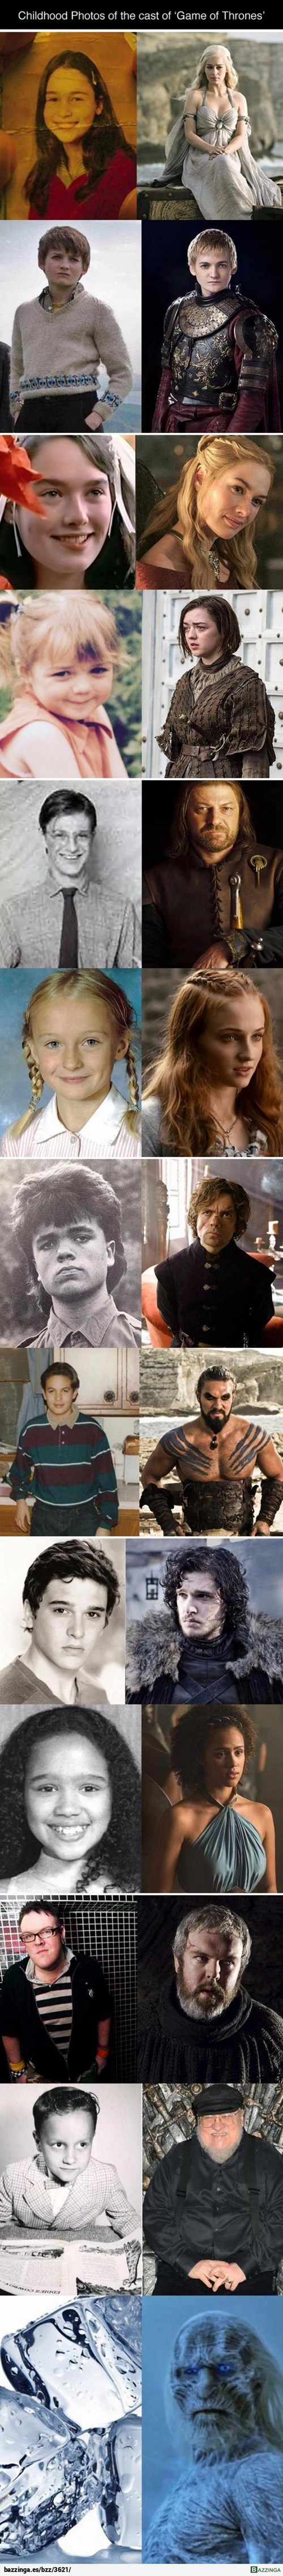 Fotos cast game of thrones